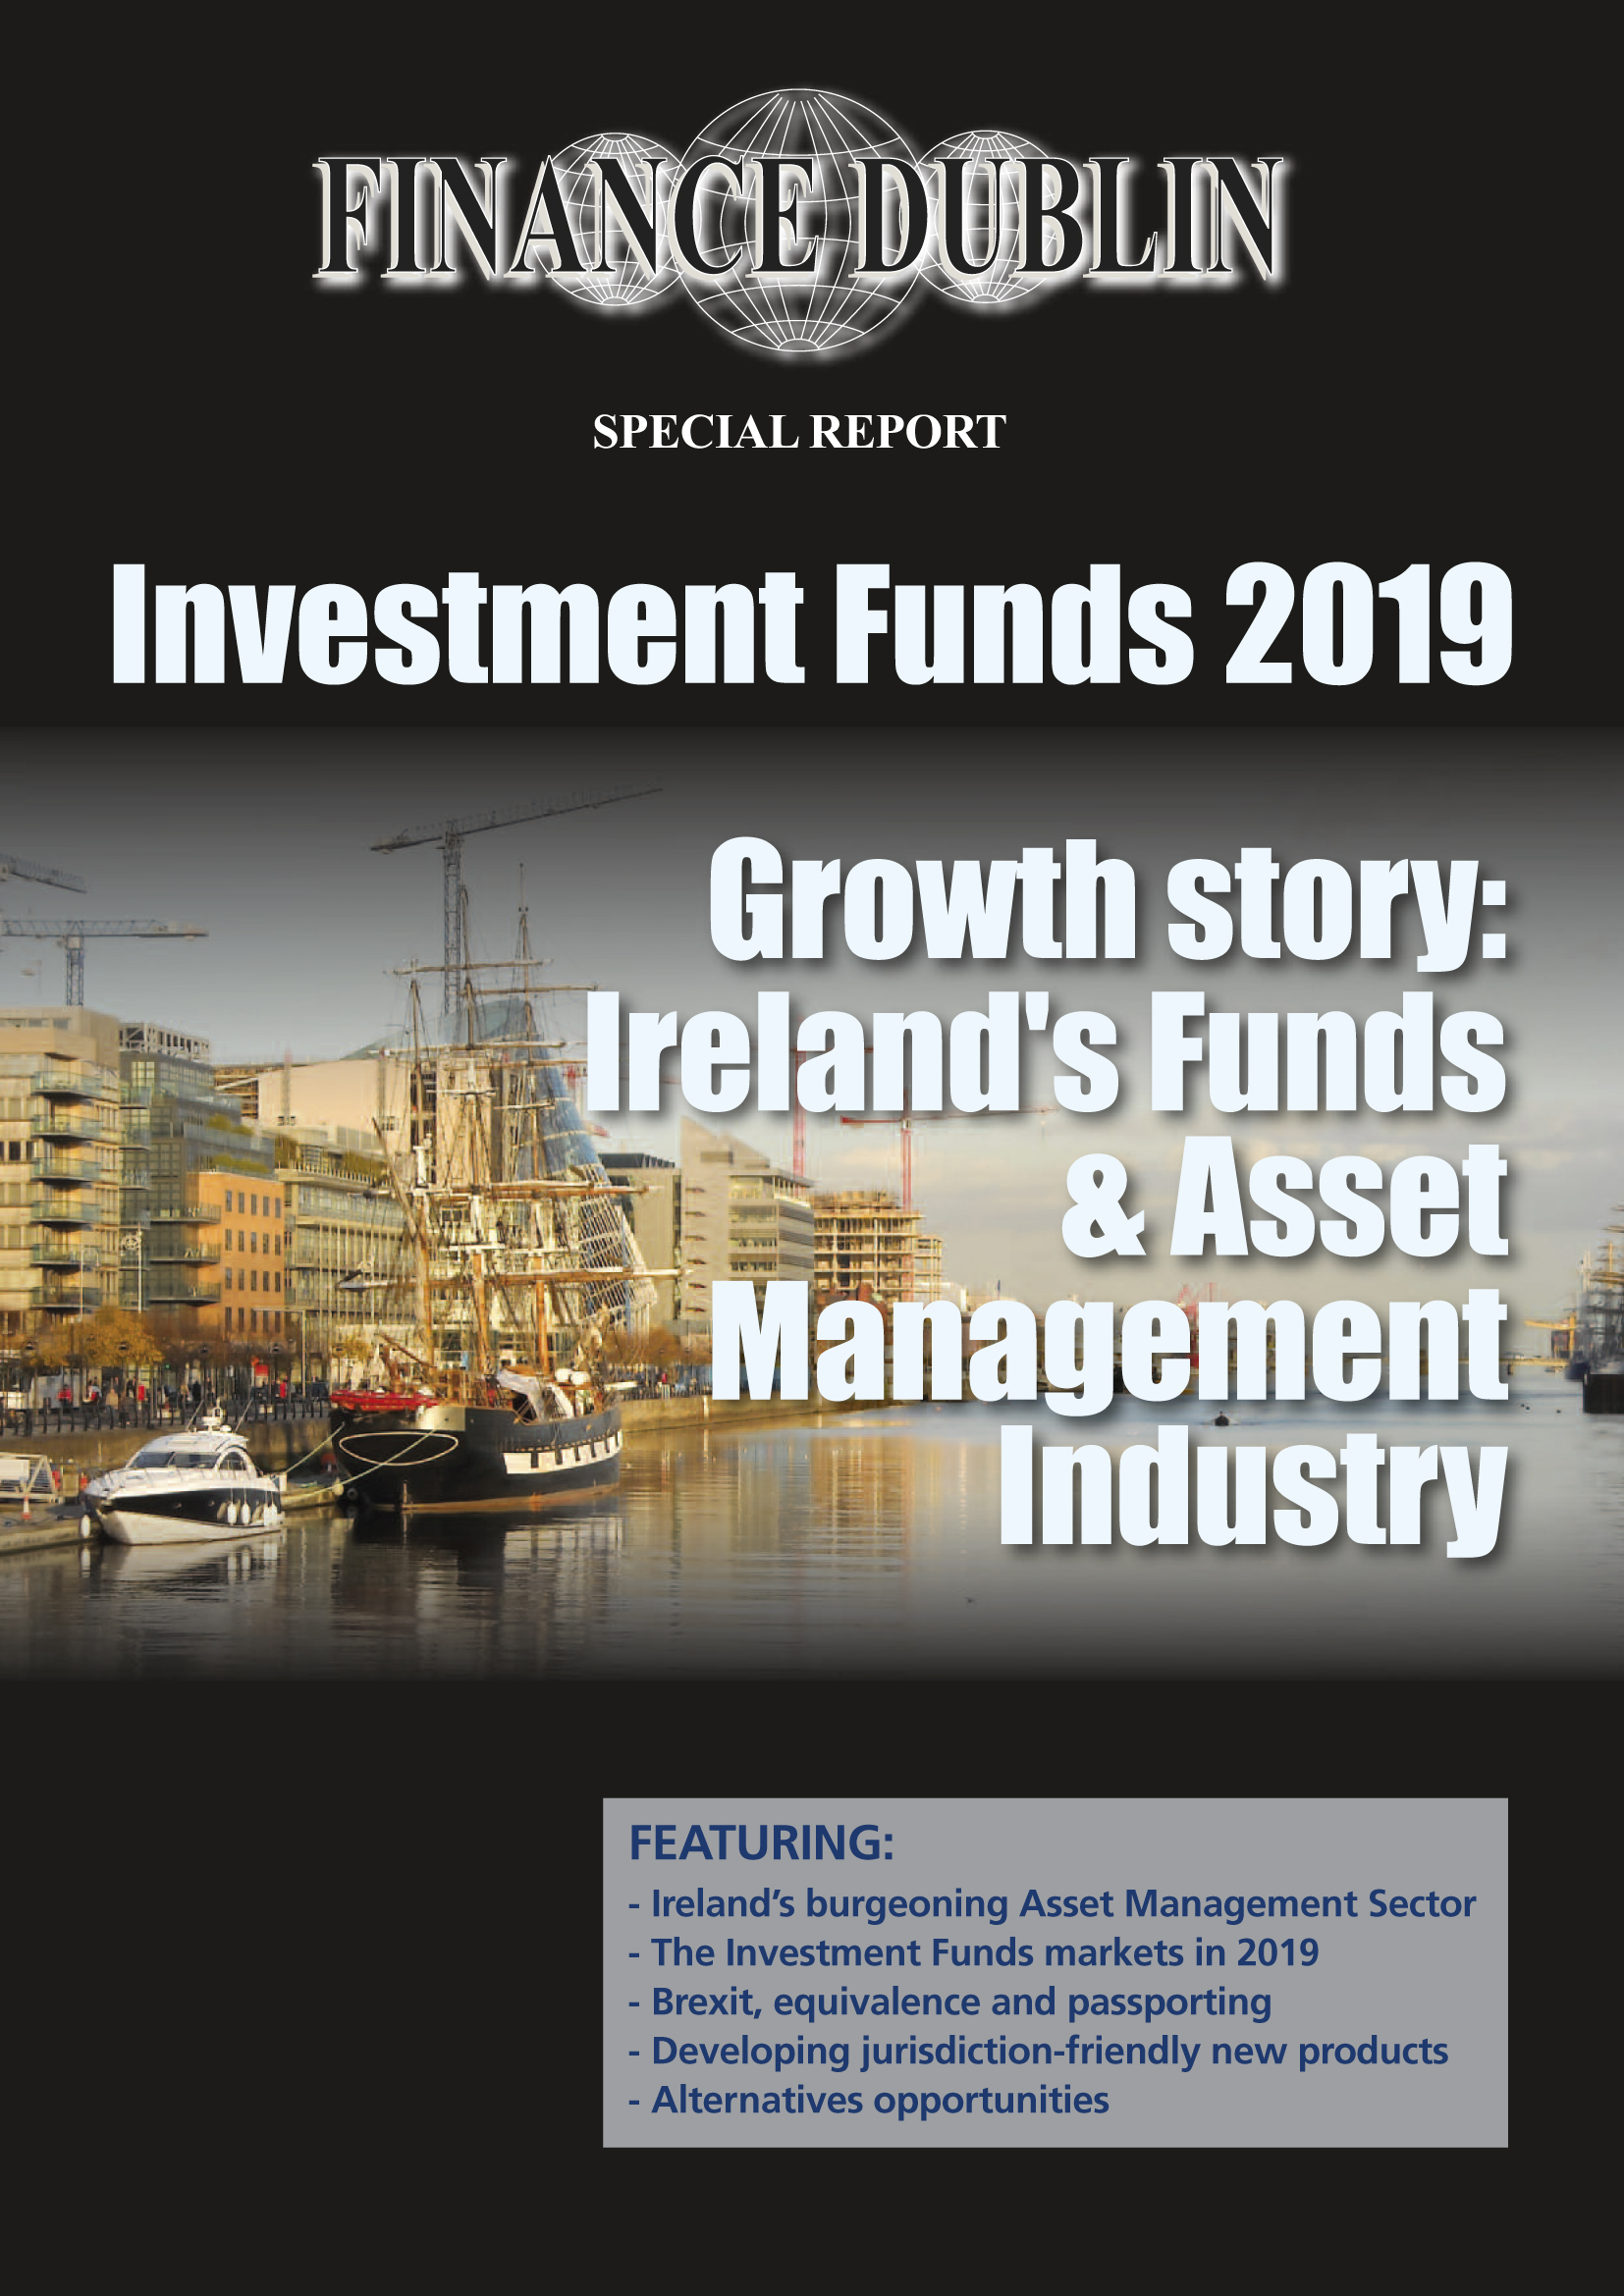 Investment Funds 2019